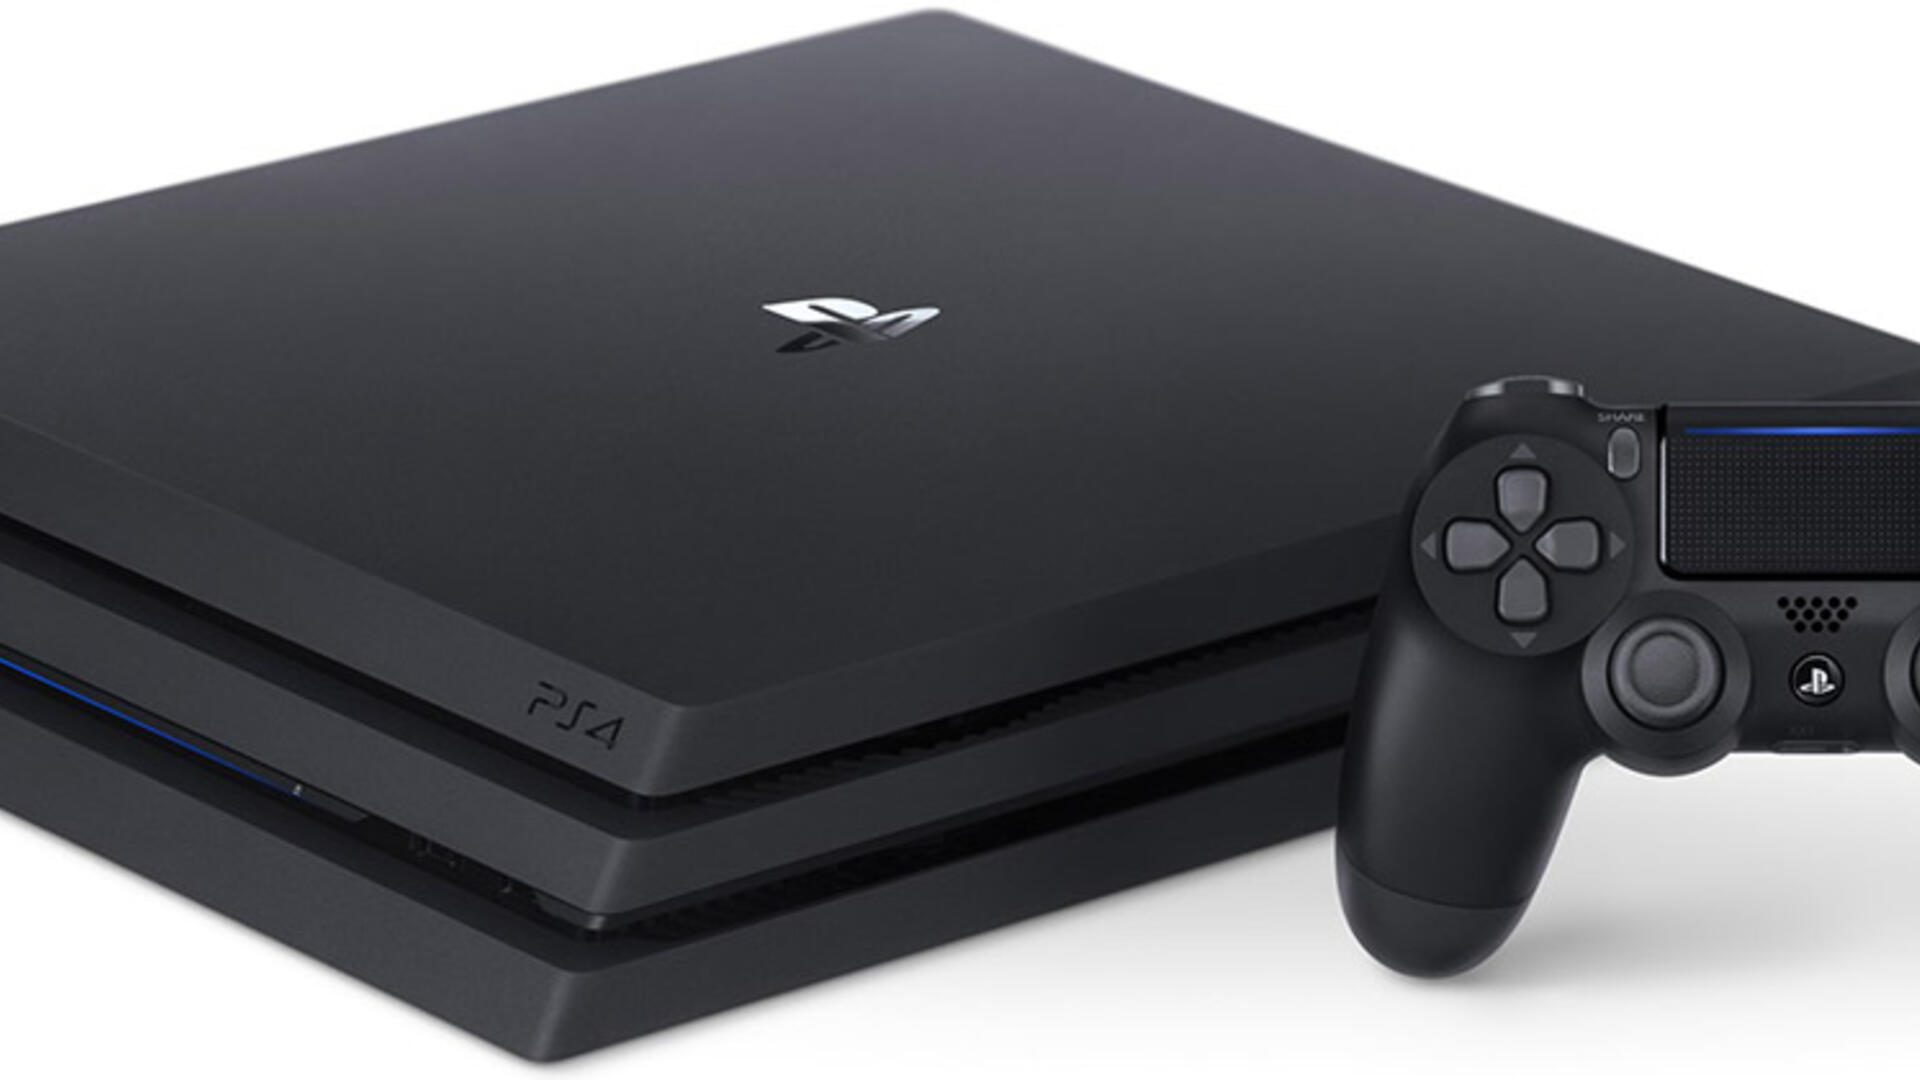 Supersampling Anti-Aliasing is Coming to the PlayStation 4 Pro